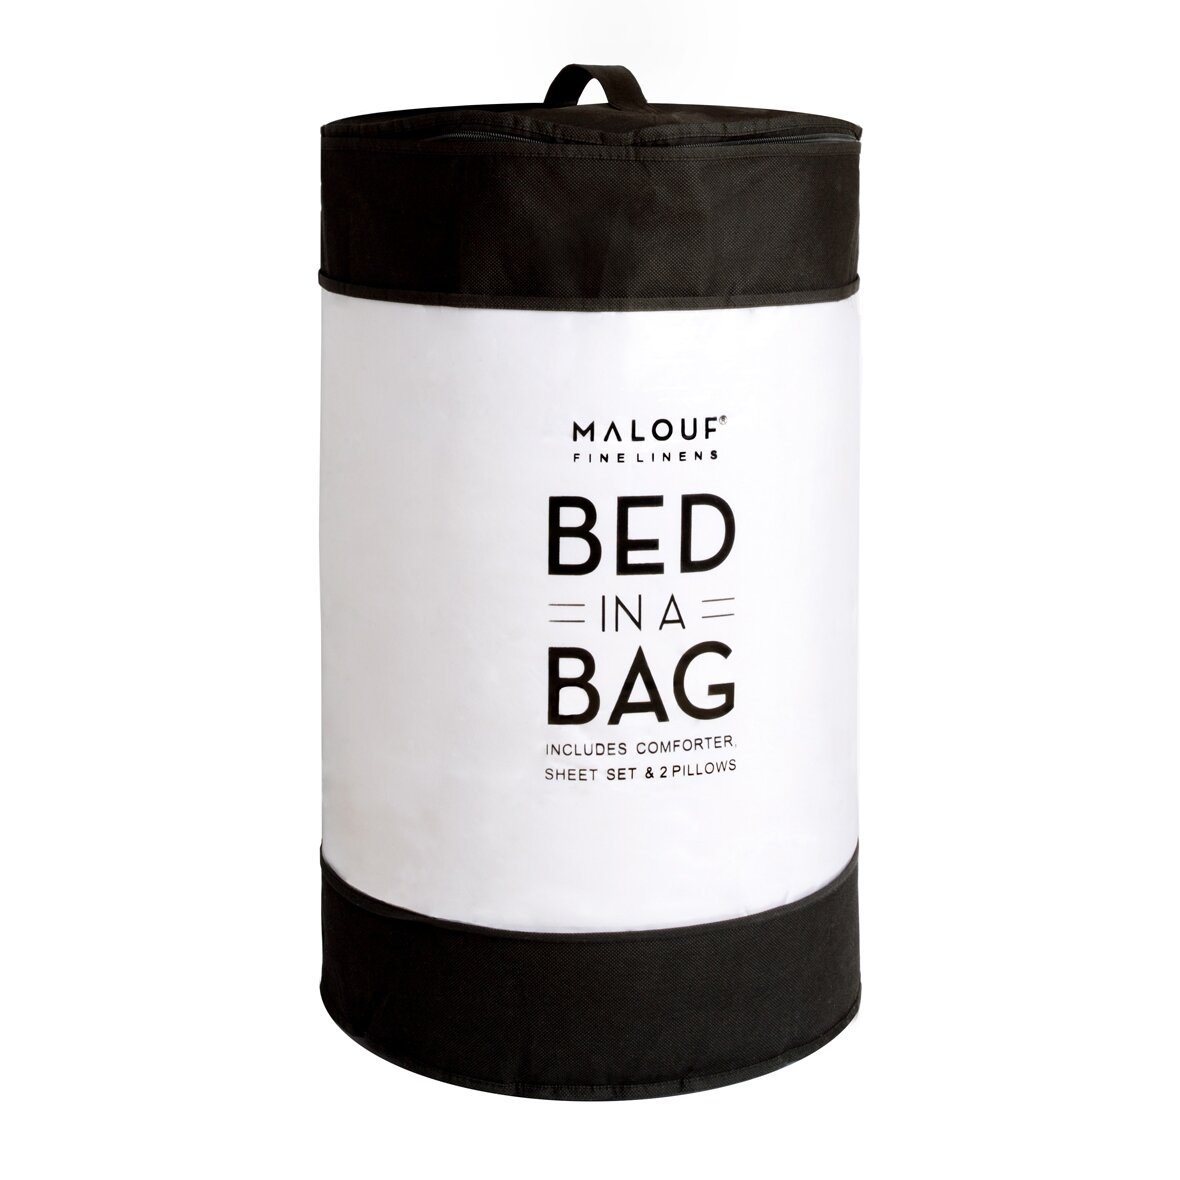 Malouf Bed in a Bag Set